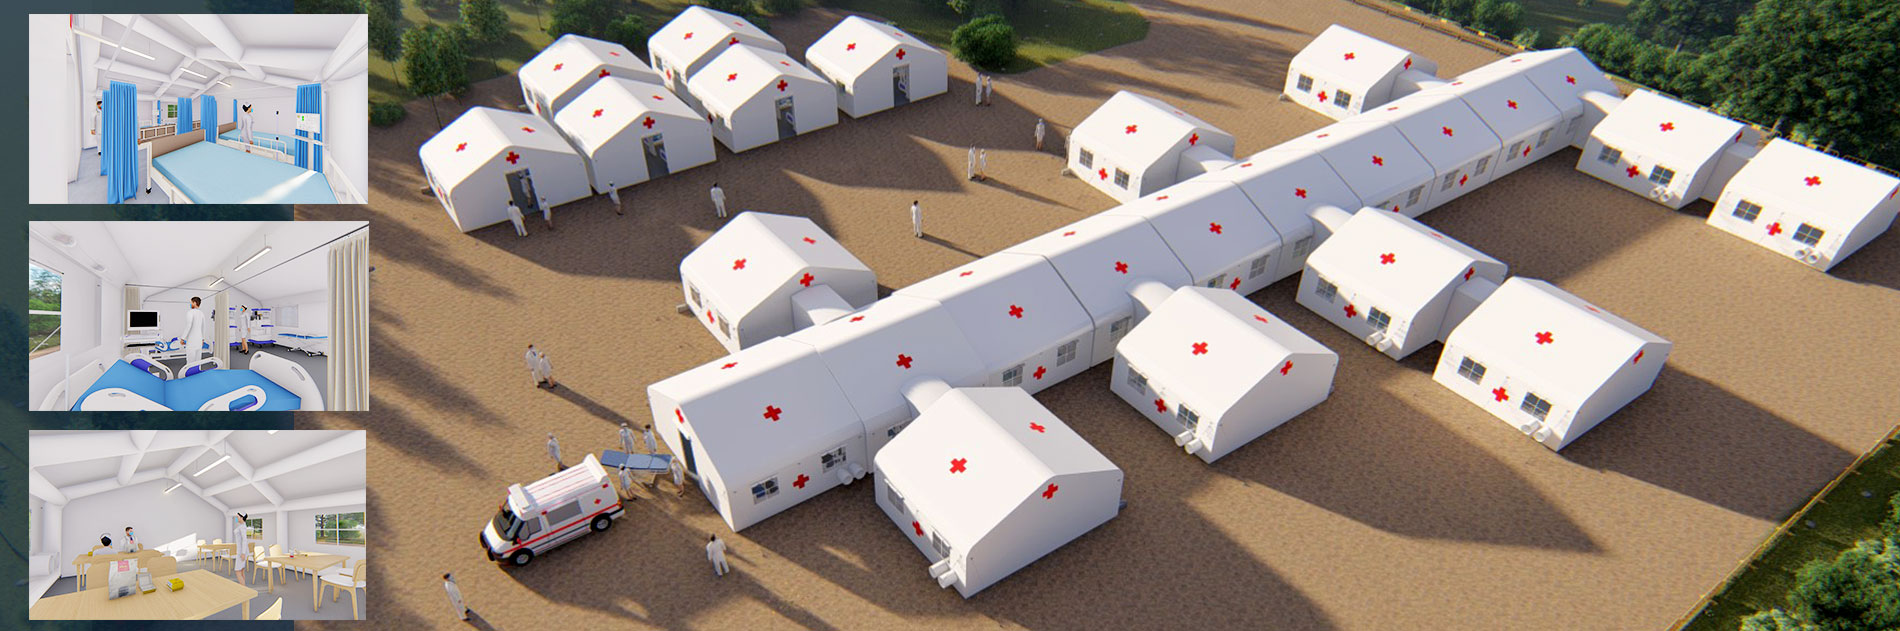 inflatable-medical-hospital-tents-temporary-quarantine-shelter-drive-through-test-and-triage-tents-2